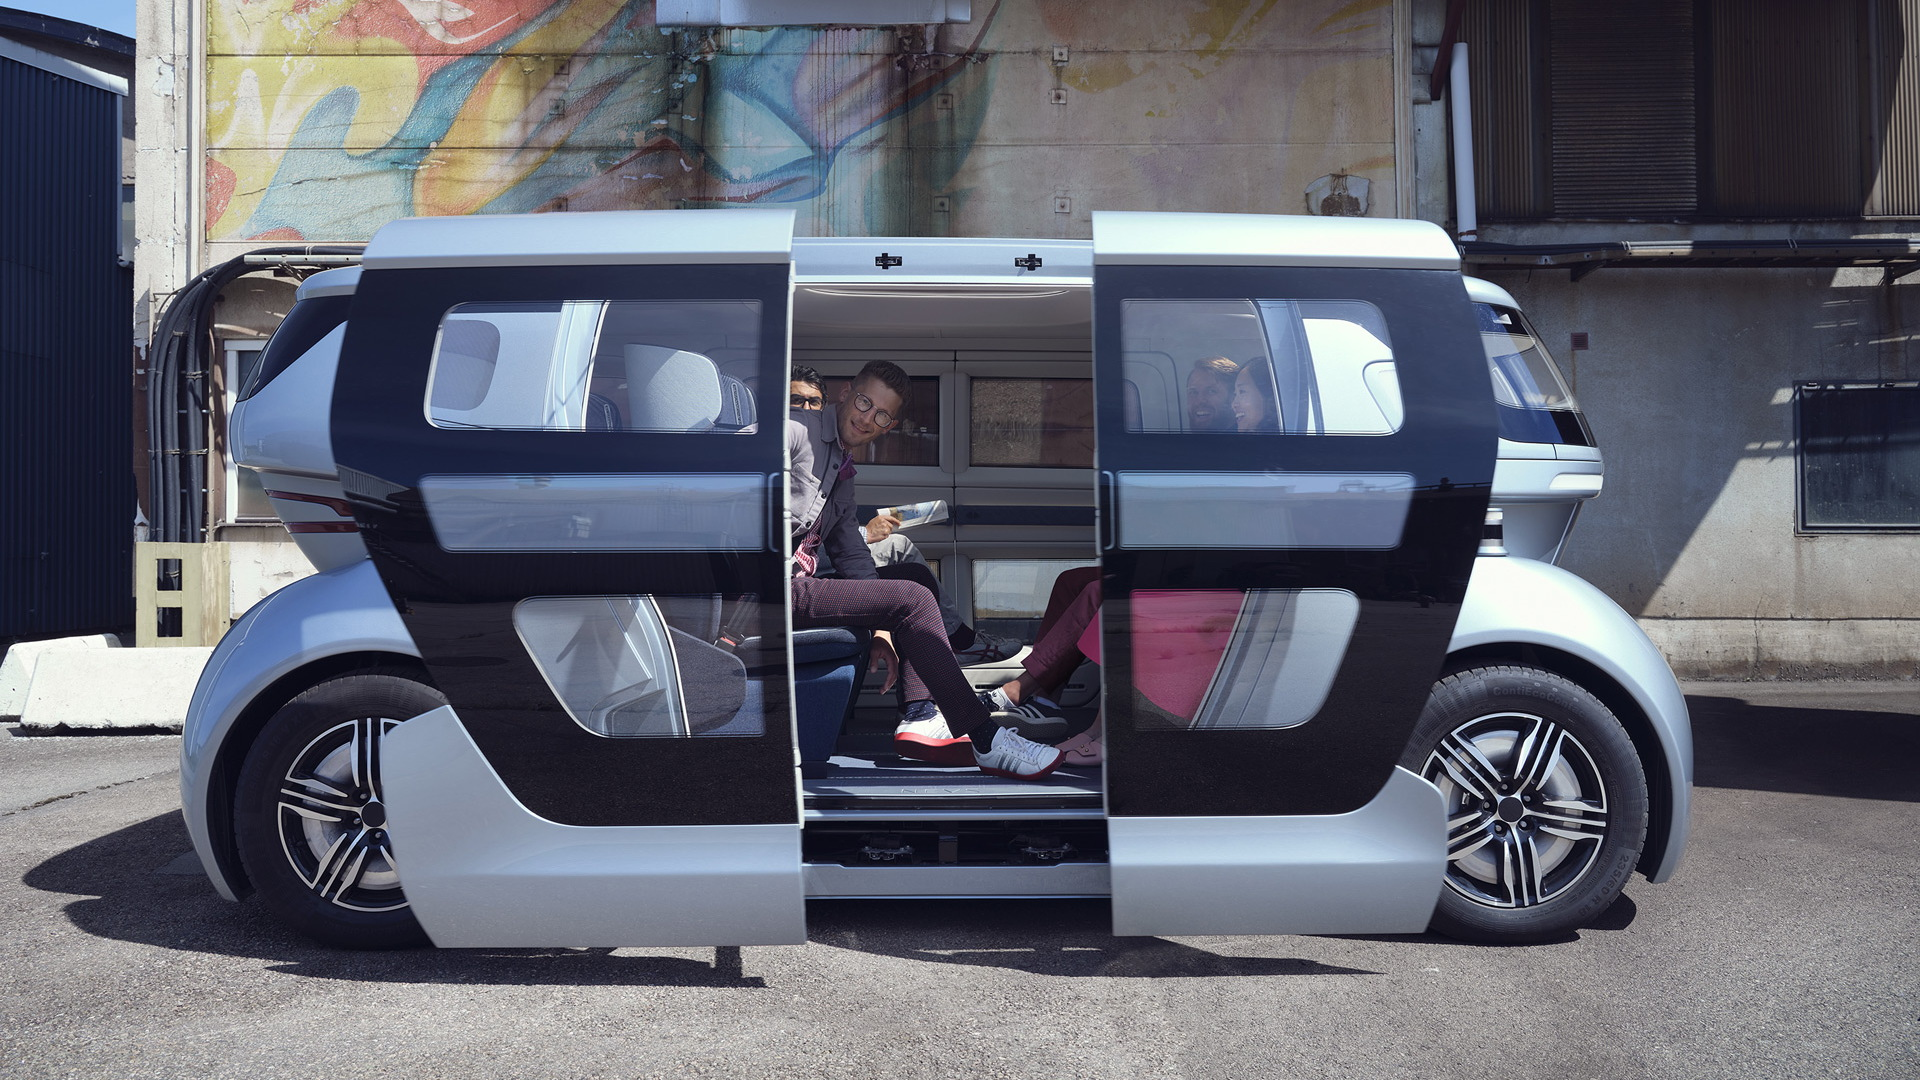 Sango self-driving car from NEVS's Pons mobility division